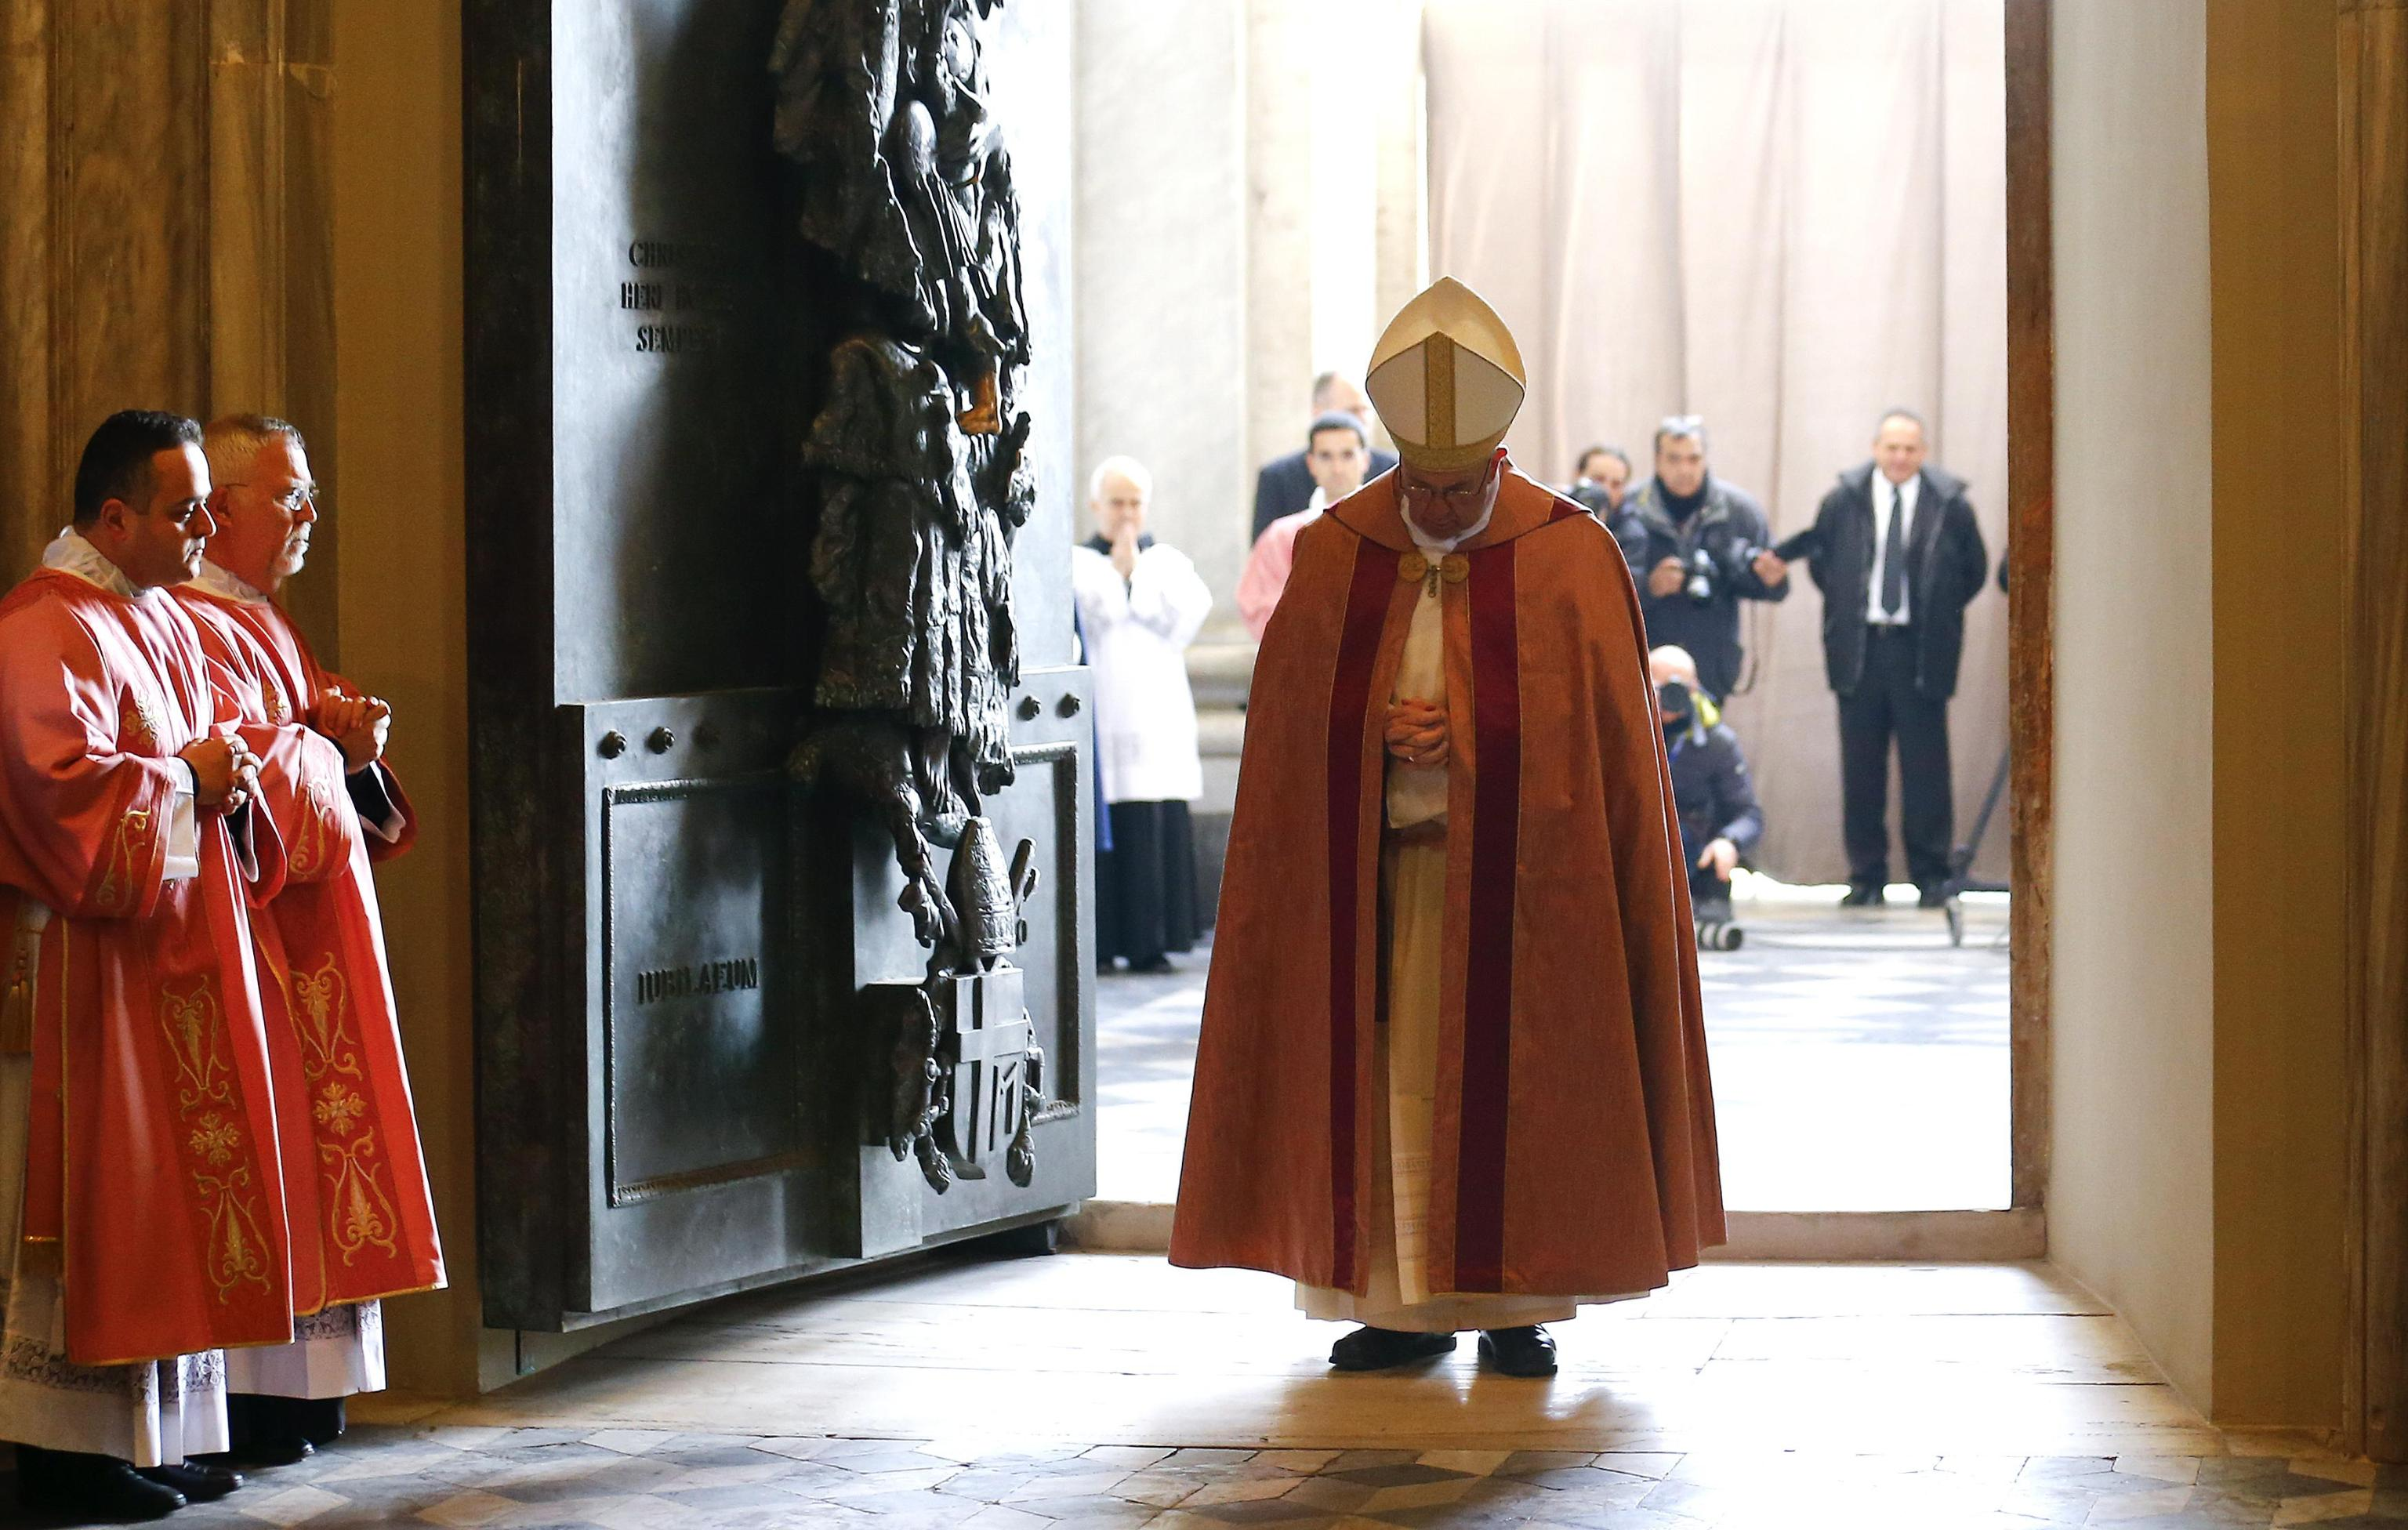 Pope Francis pauses and prays at the front of the Holy Door of the St John Lateran Basilica